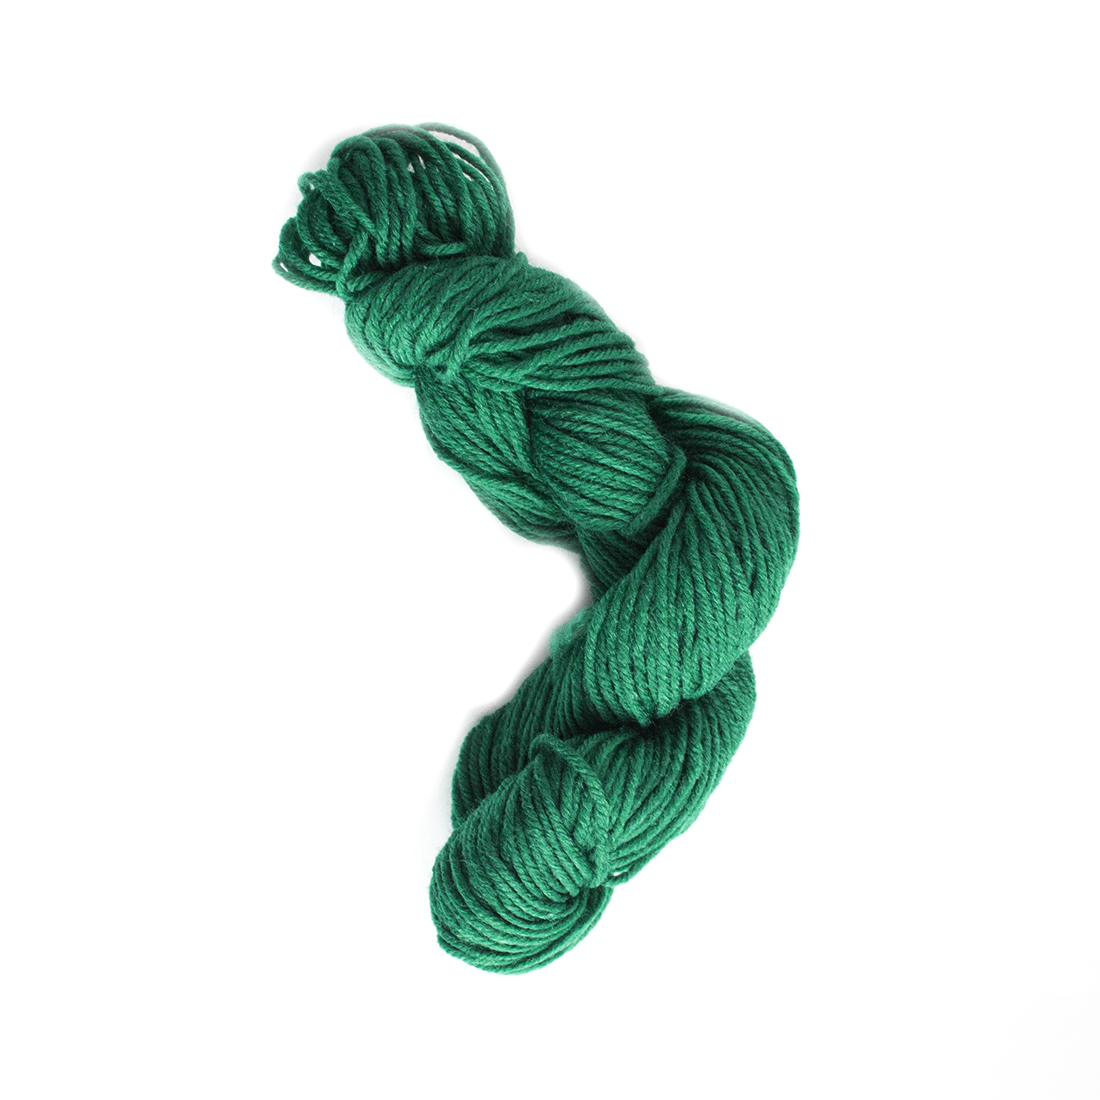 Knitting Work From Home : Wool yarn picture more detailed about polyester